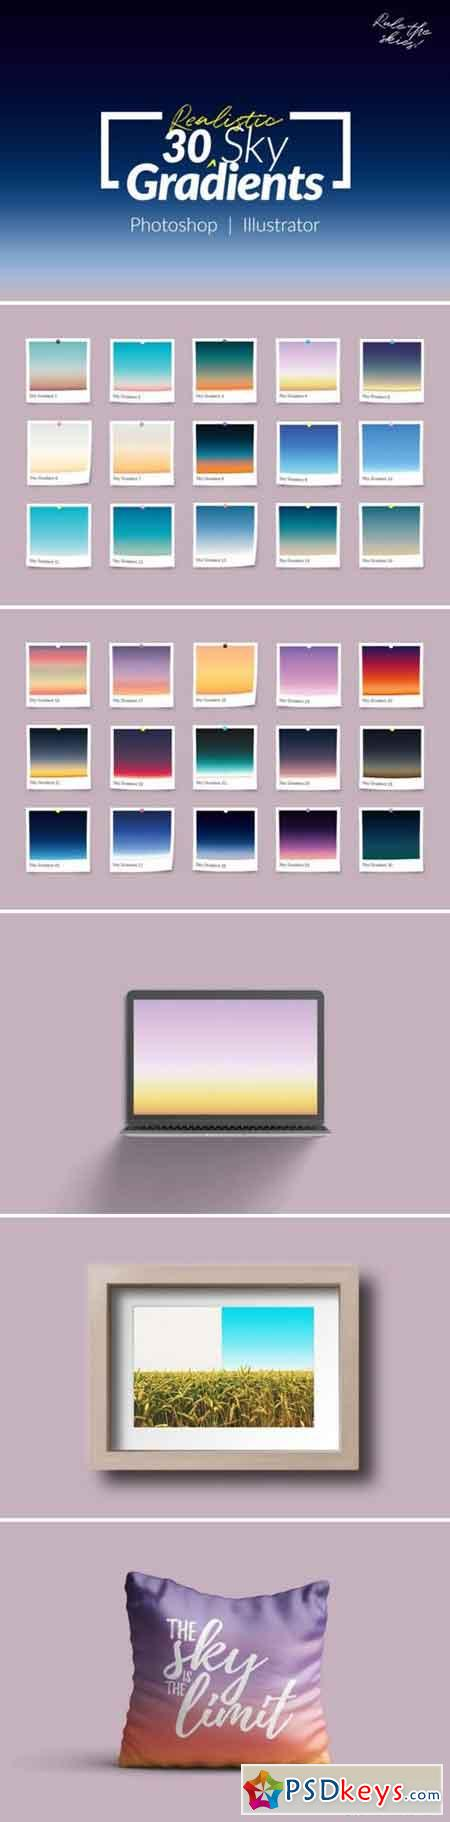 30 Realistic Sky Gradients for Photoshop & Illustrator 746626